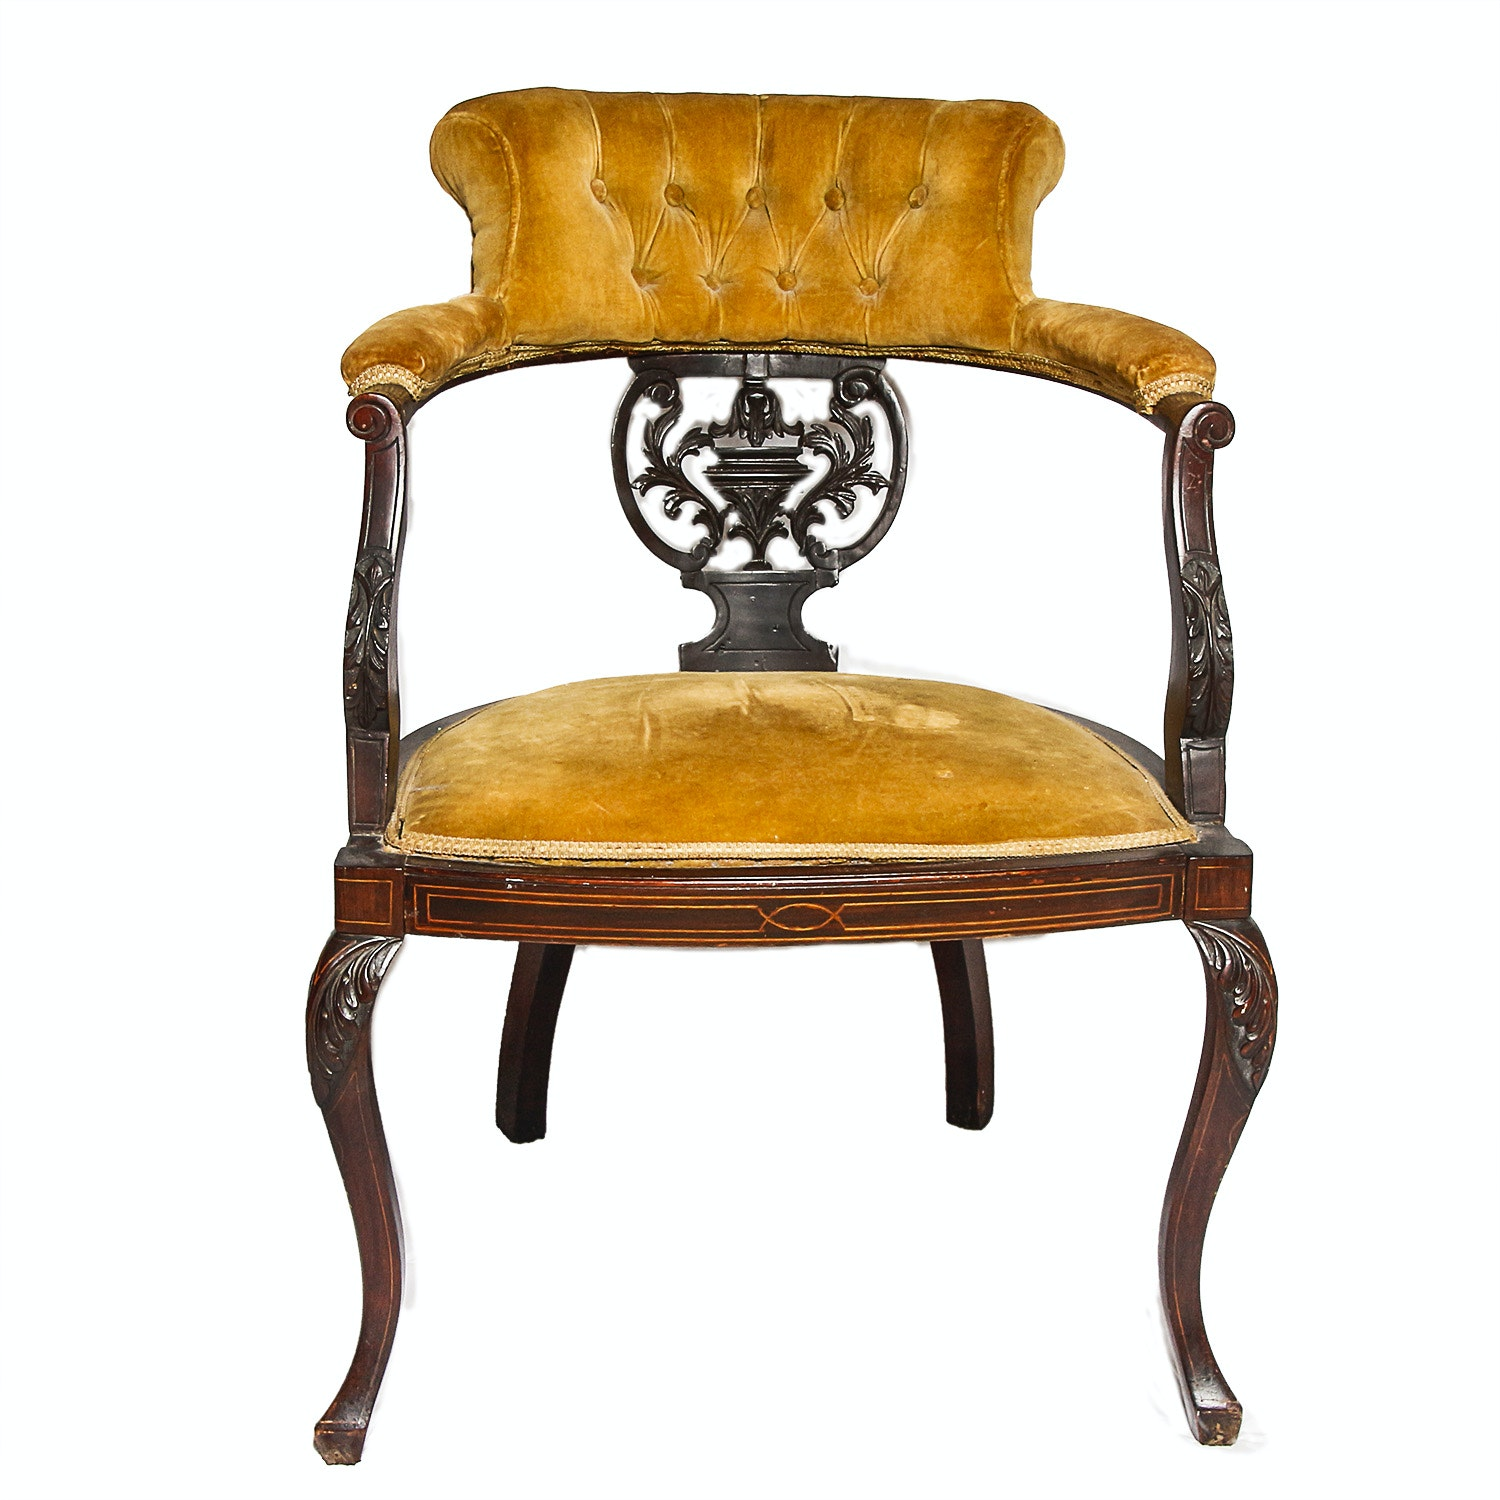 Vintage Adams Style Captain's Chair